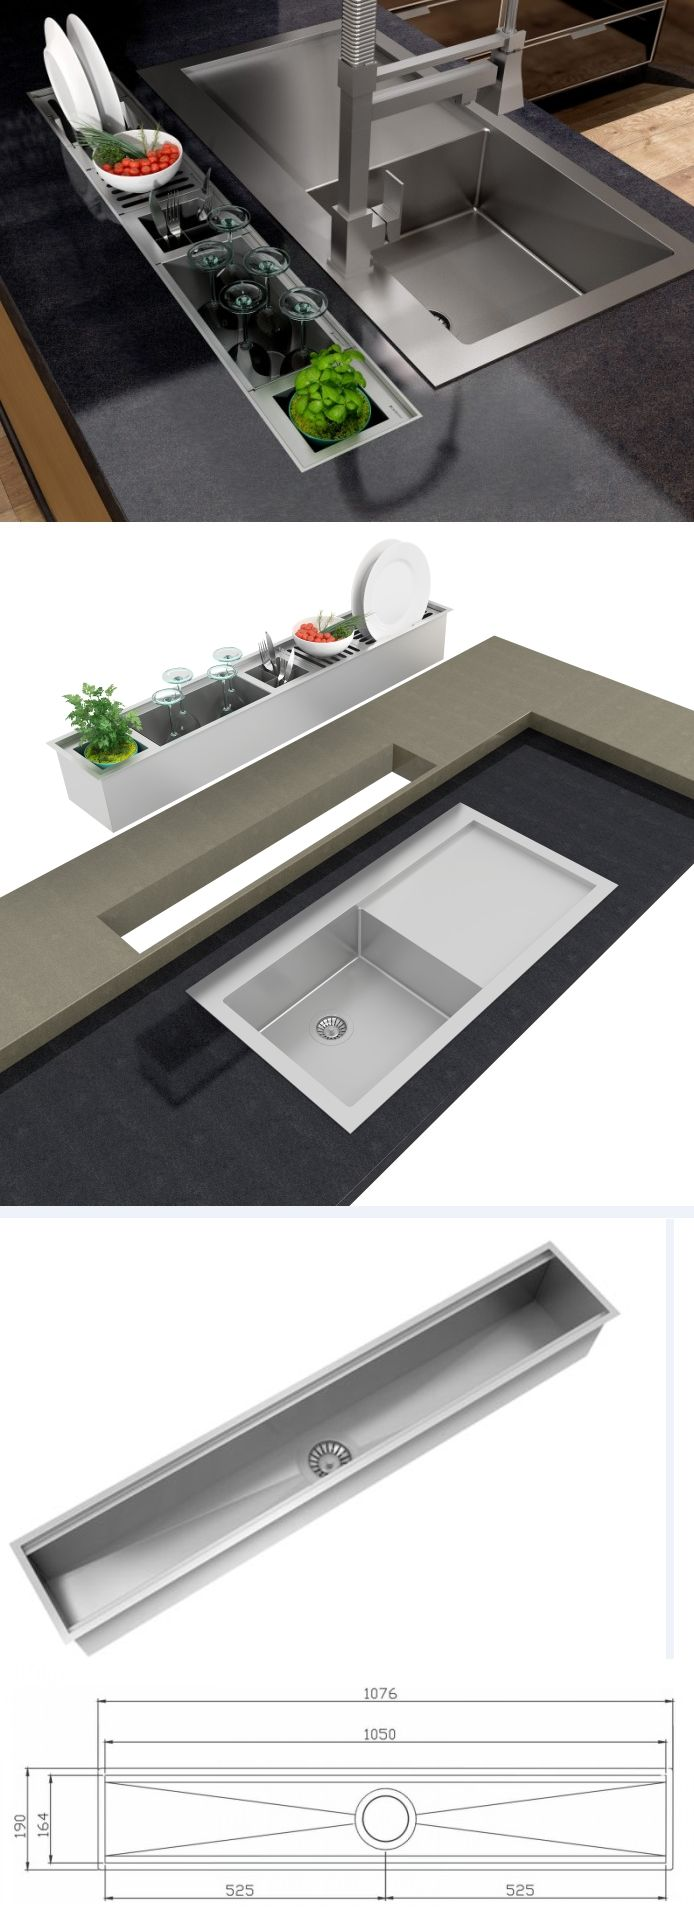 Kitchen Washing Area + Utensils Drying area concept